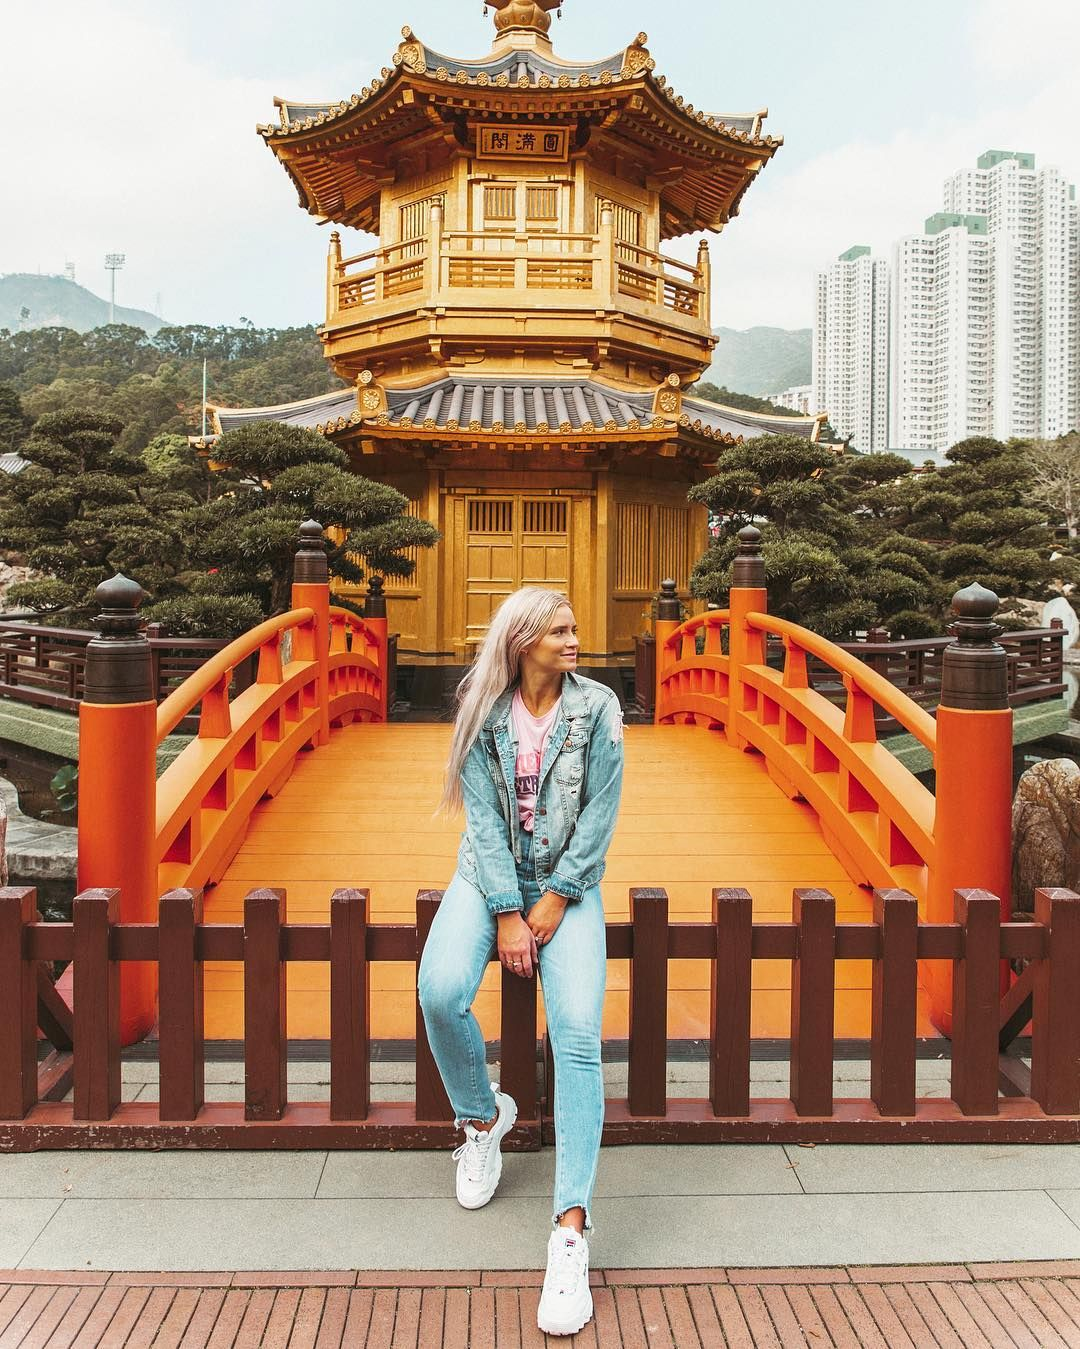 """BROOKE SCHEURN? on Instagram: """"We just uploaded our VLOG from Hong Kong! All the deets on what to do and see in 24 hours! Don't m ..."""